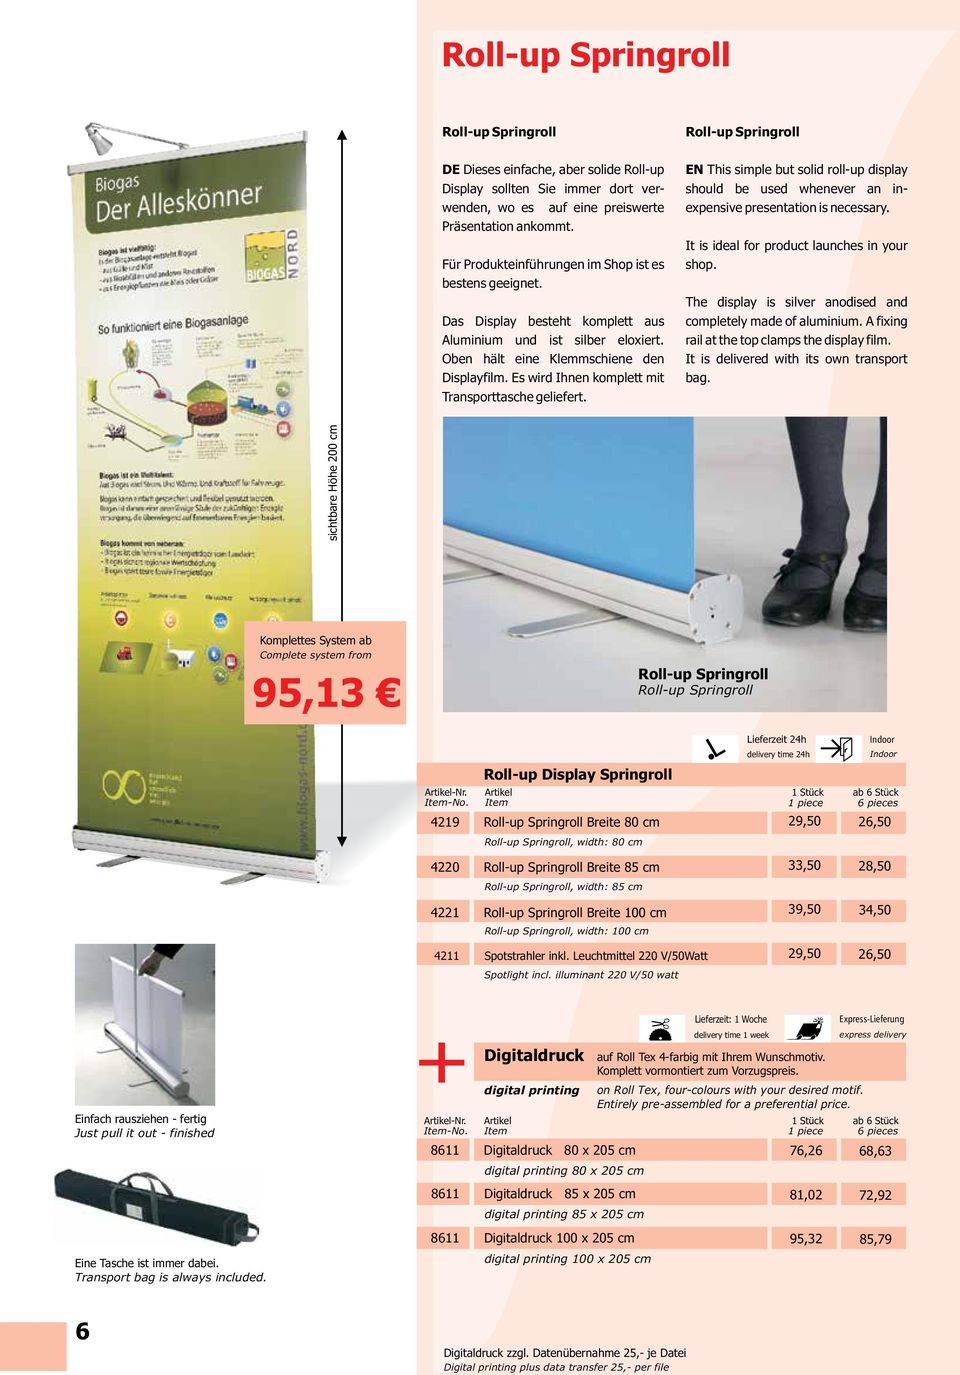 Es wird Ihnen komplett mit Transporttasche geliefert. Roll-up Springroll EN This simple but solid roll-up display should be used whenever an inexpensive presentation is necessary.